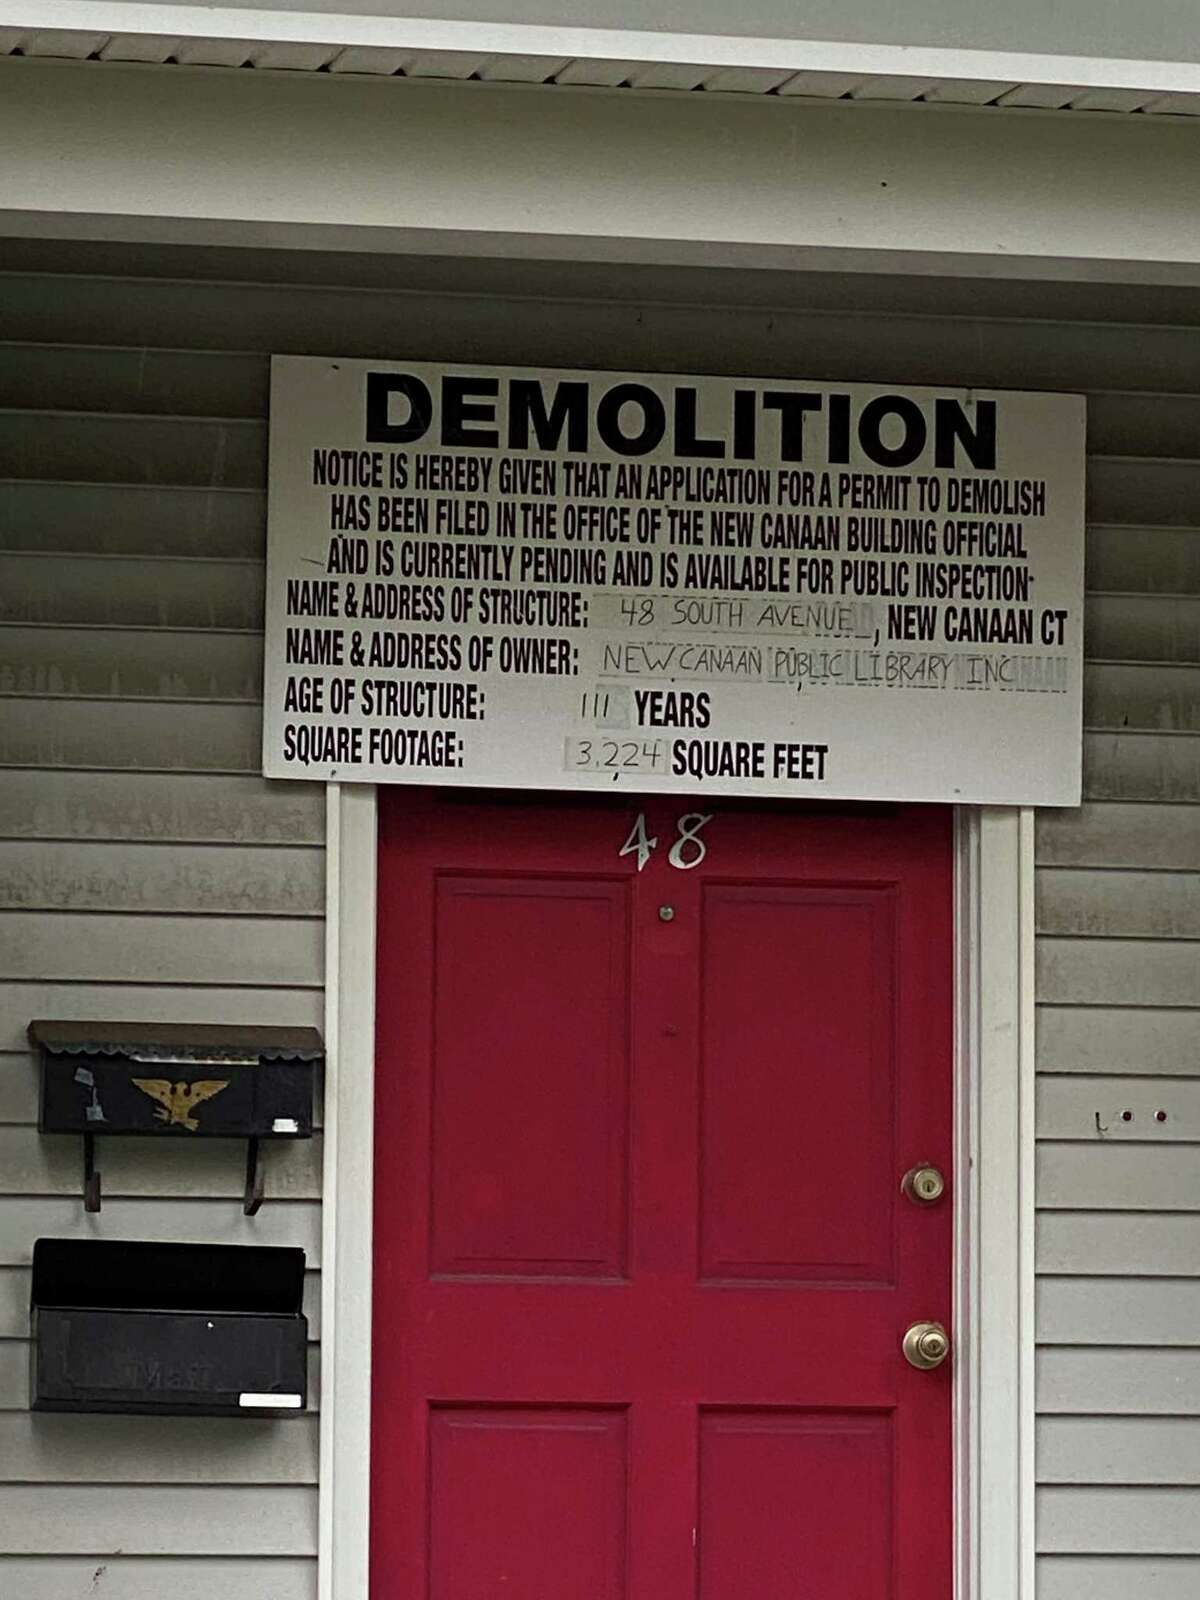 A notice of demolition was hanging over the door of the 111-year-old home at 48 South Ave. in New Canaan, on Tuesday, Sept. 29. The 3,224 square- foot building is owned by the New Canaan Library.